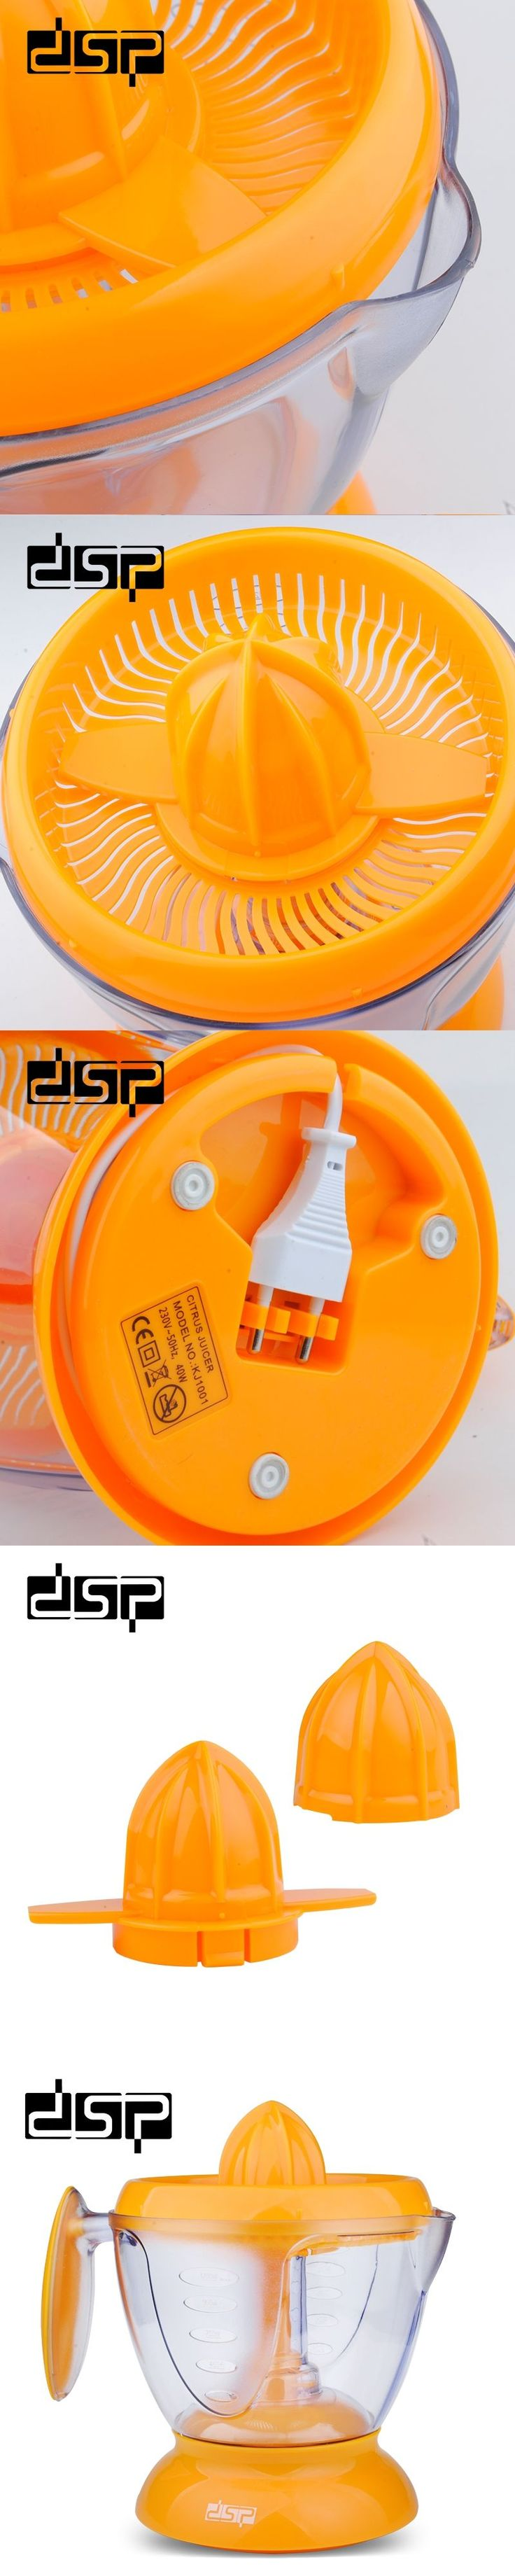 DSP KJ1001 Manual Juicer Orange Lemon Squeezer Fuite Juice Presser Wheatgrass Extractor Citrus Fruit Juicer